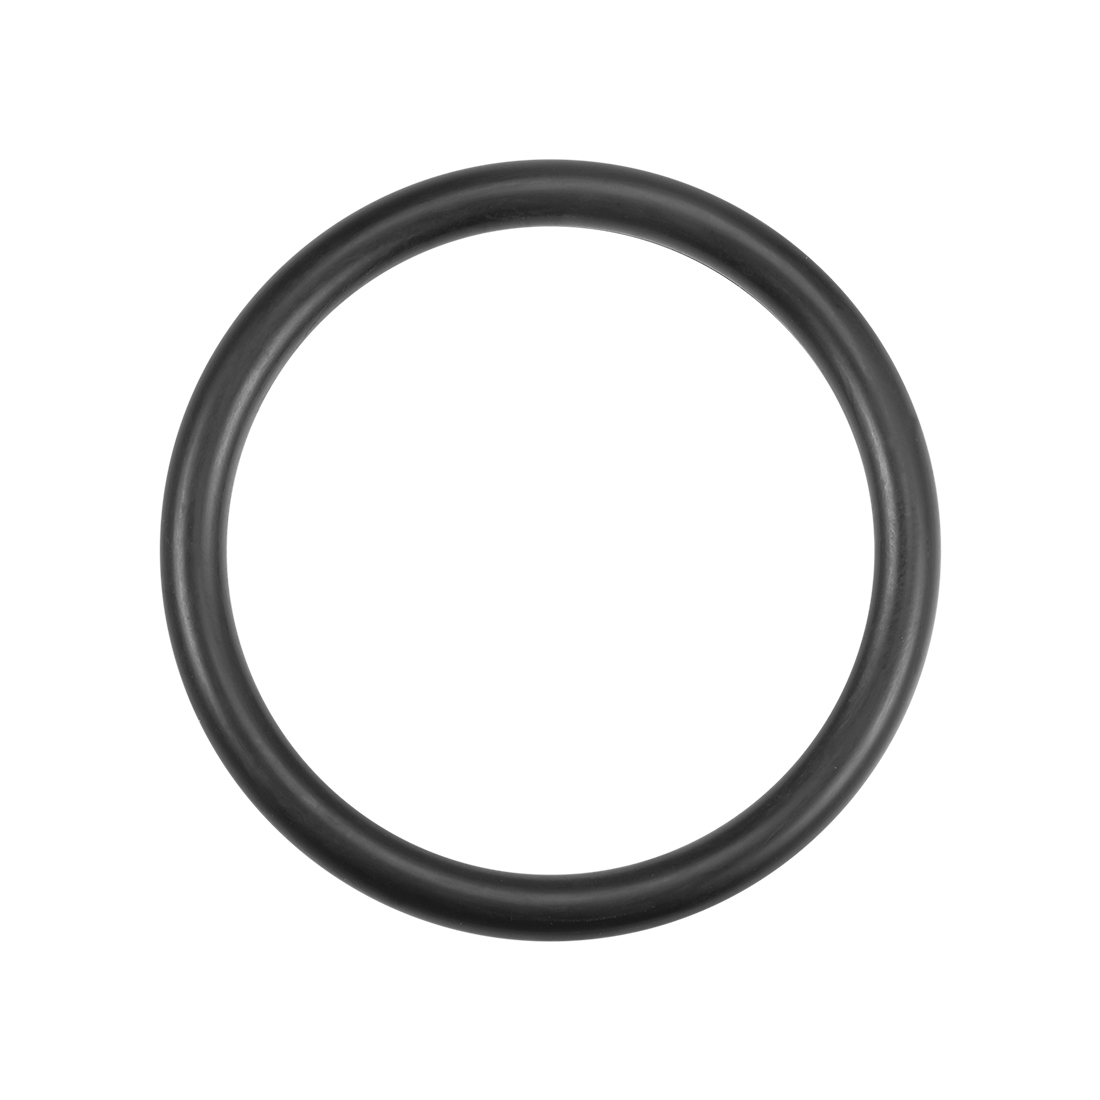 O-Rings Nitrile Rubber 36mm x 44mm x 4mm Round Seal Gasket